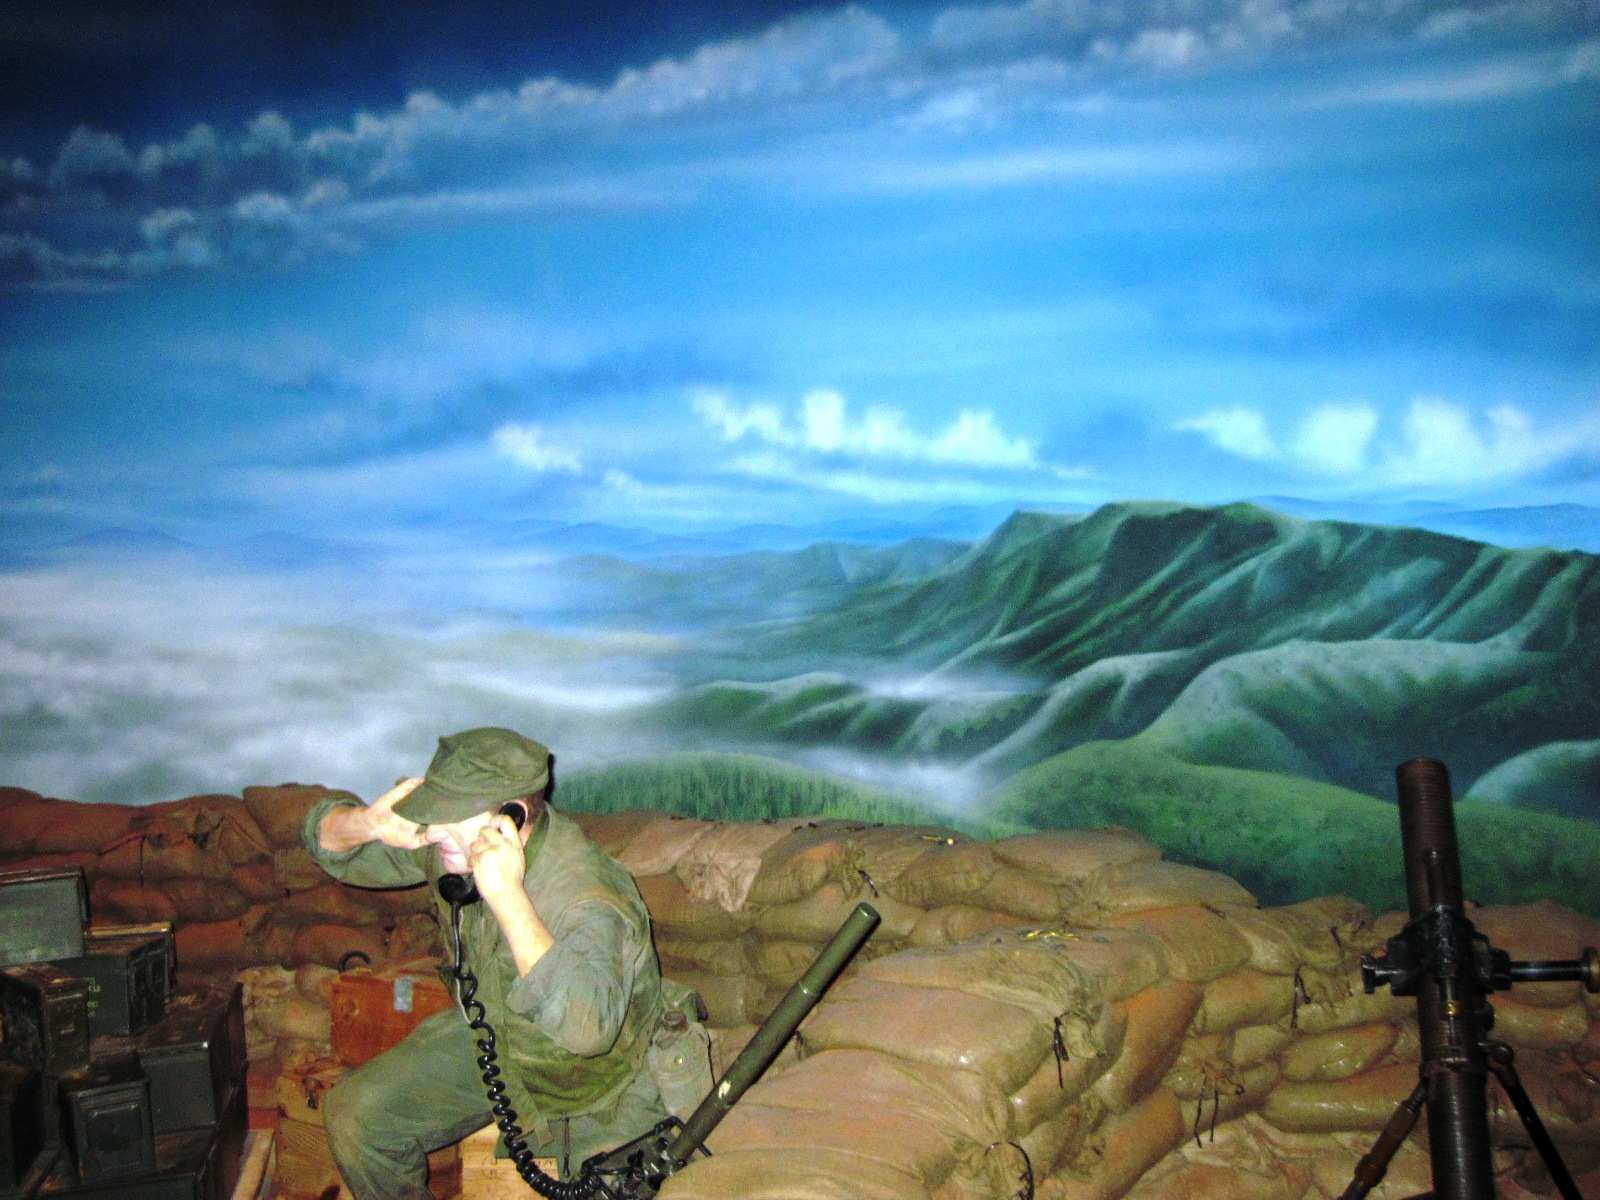 National-Museum-Marine-Corps-mural-3-Paul-Barker